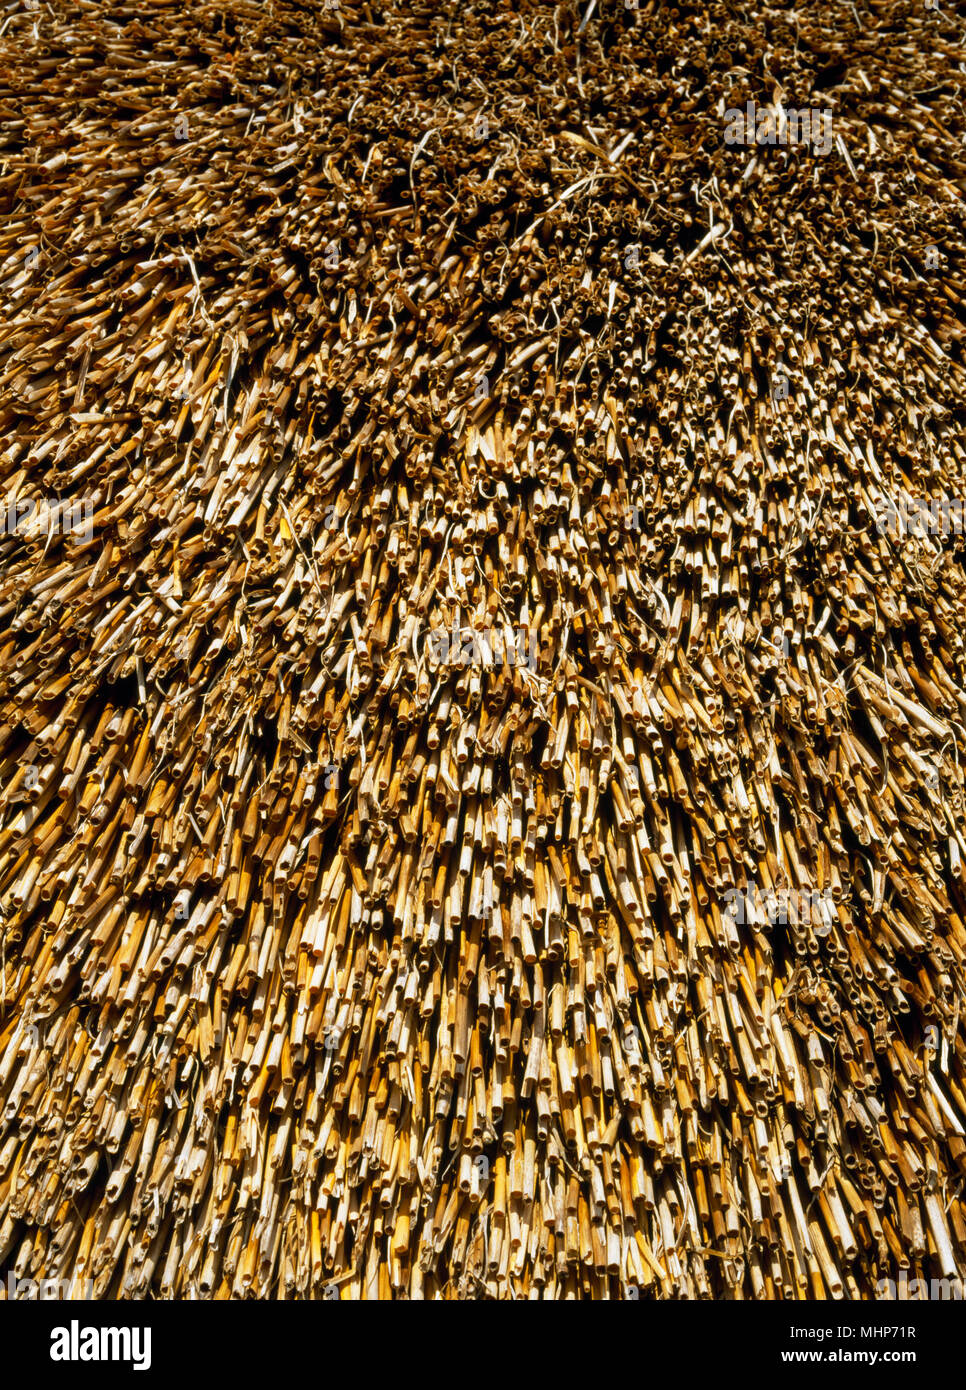 Detail of thatched roof of the reconstructed Longbridge Deverel House (Great Roundhouse) at Butser Ancient Farm, Hampshire, UK; wheat straw. - Stock Image